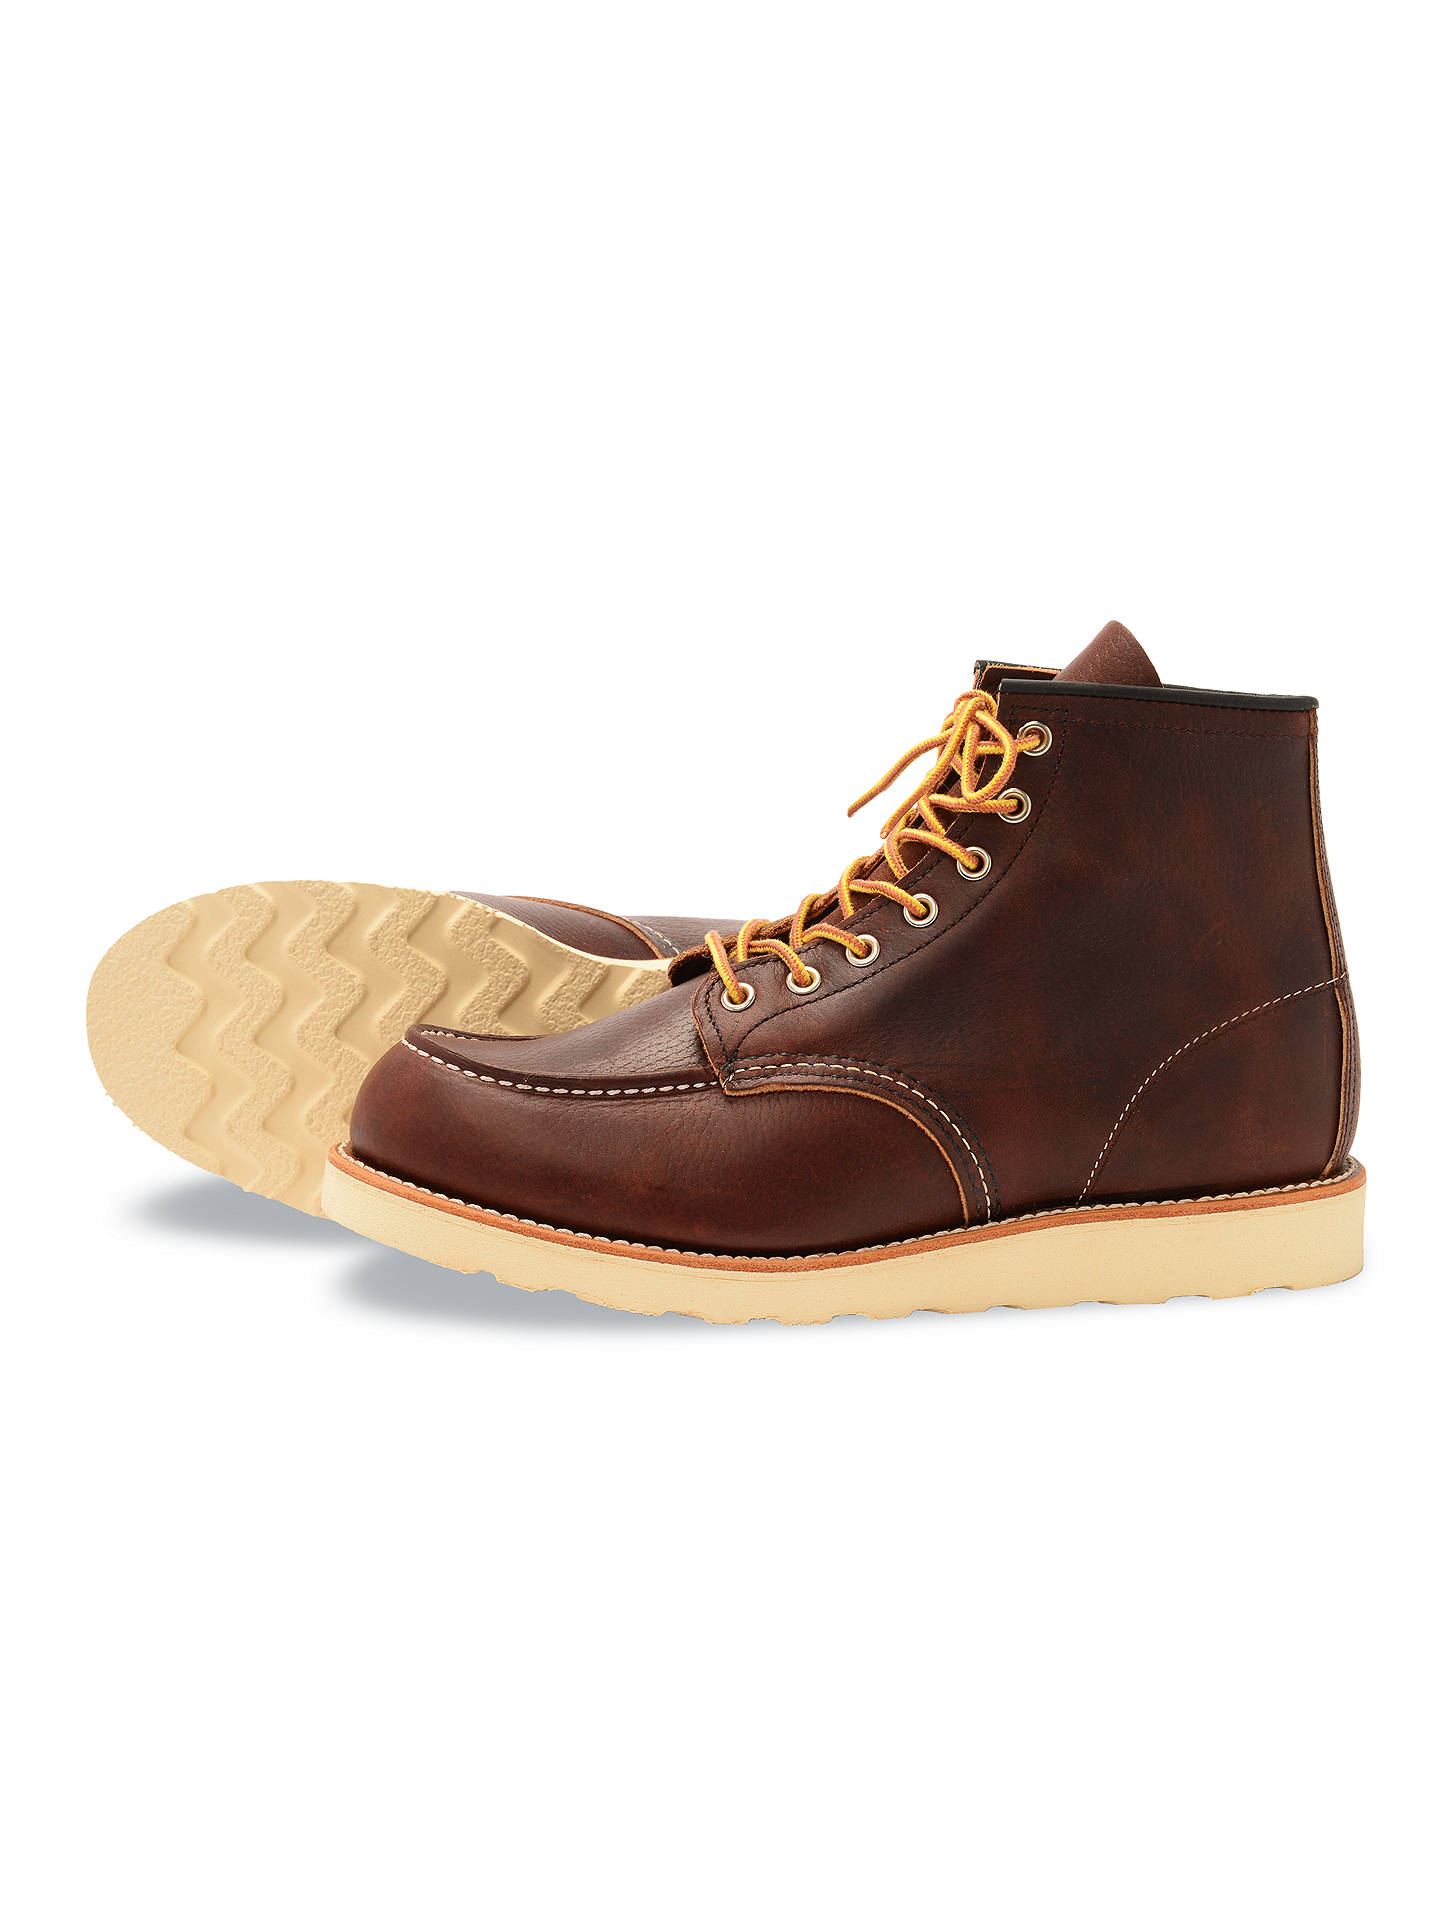 Buy Red Wing 8138 Moc Toe Boot, Briar Oil Slick, 7 Online at johnlewis.com